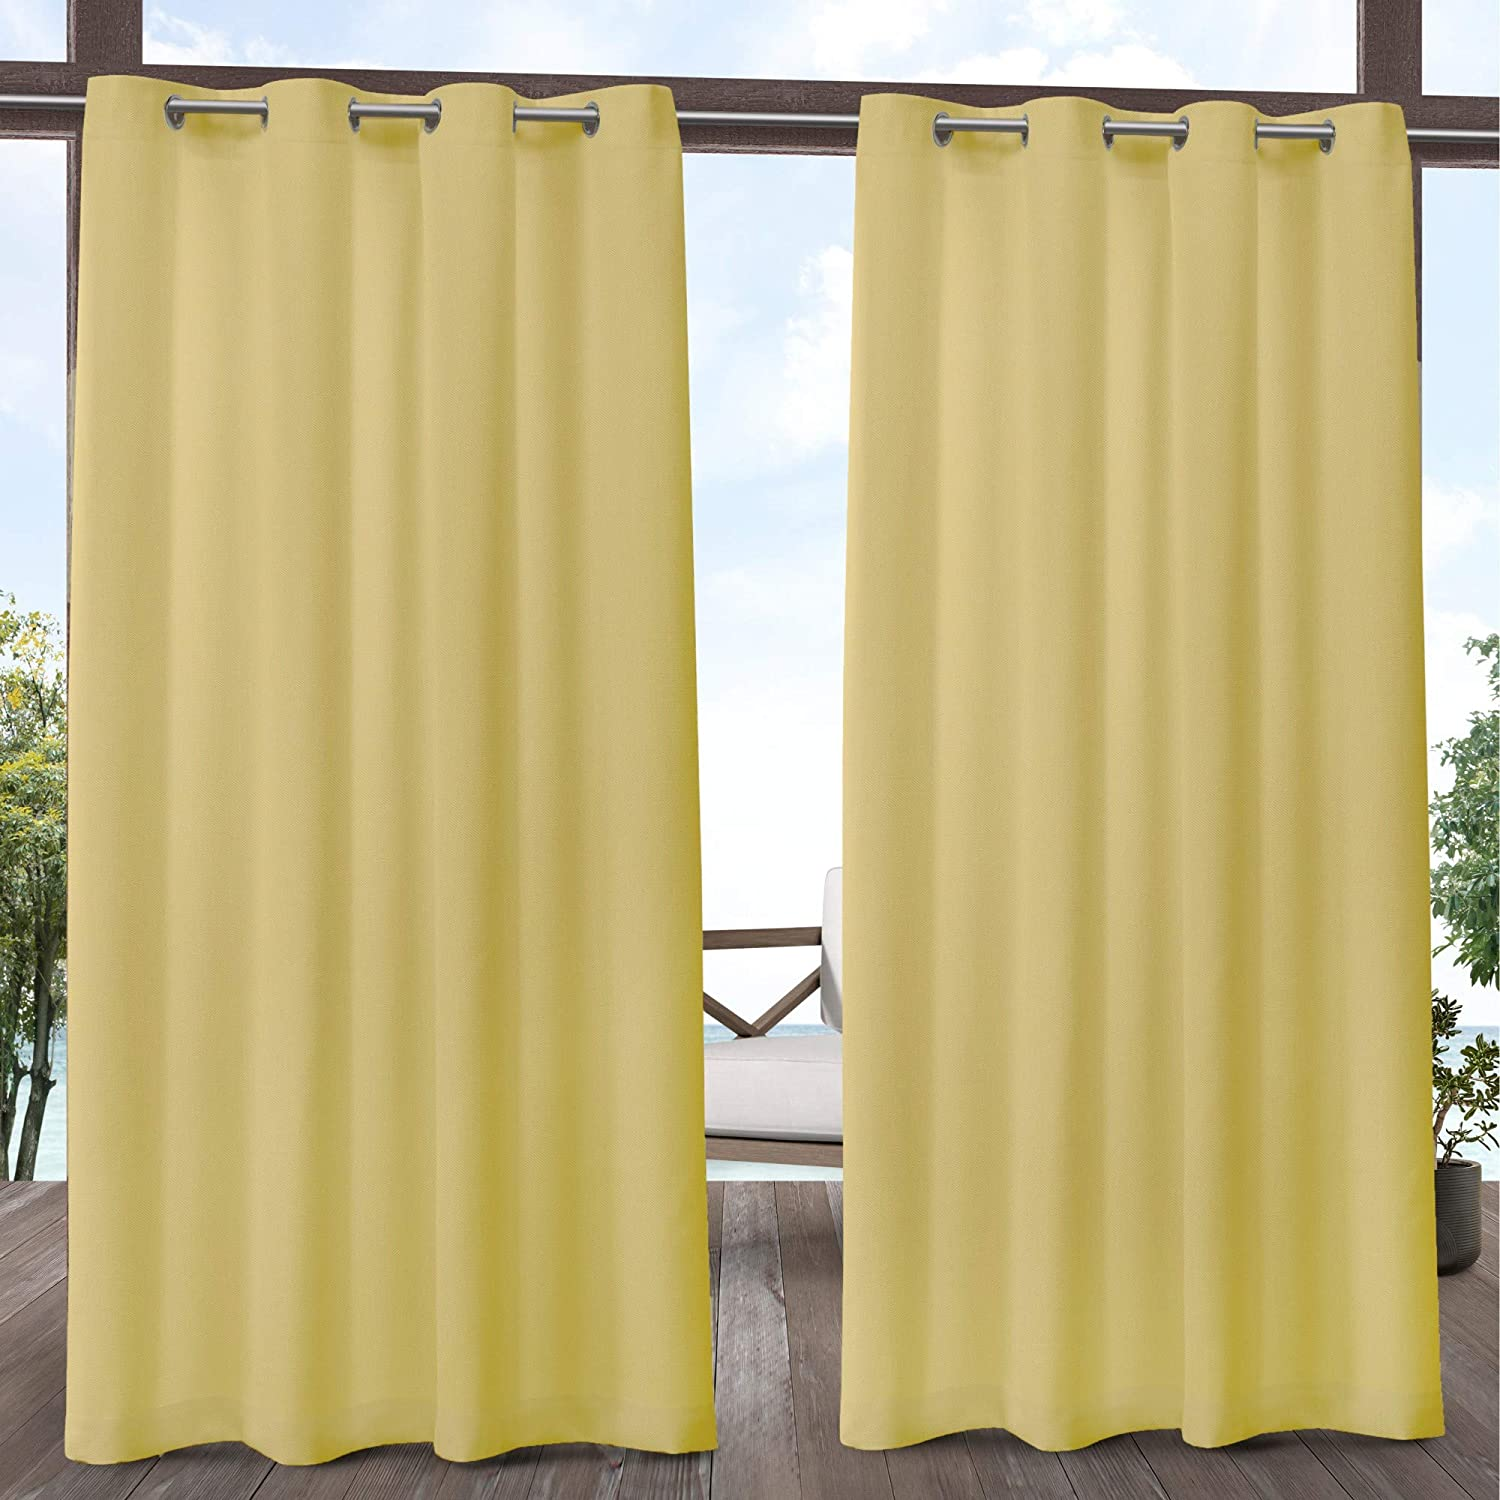 Image result for BUTTER GOLD CURTAINS